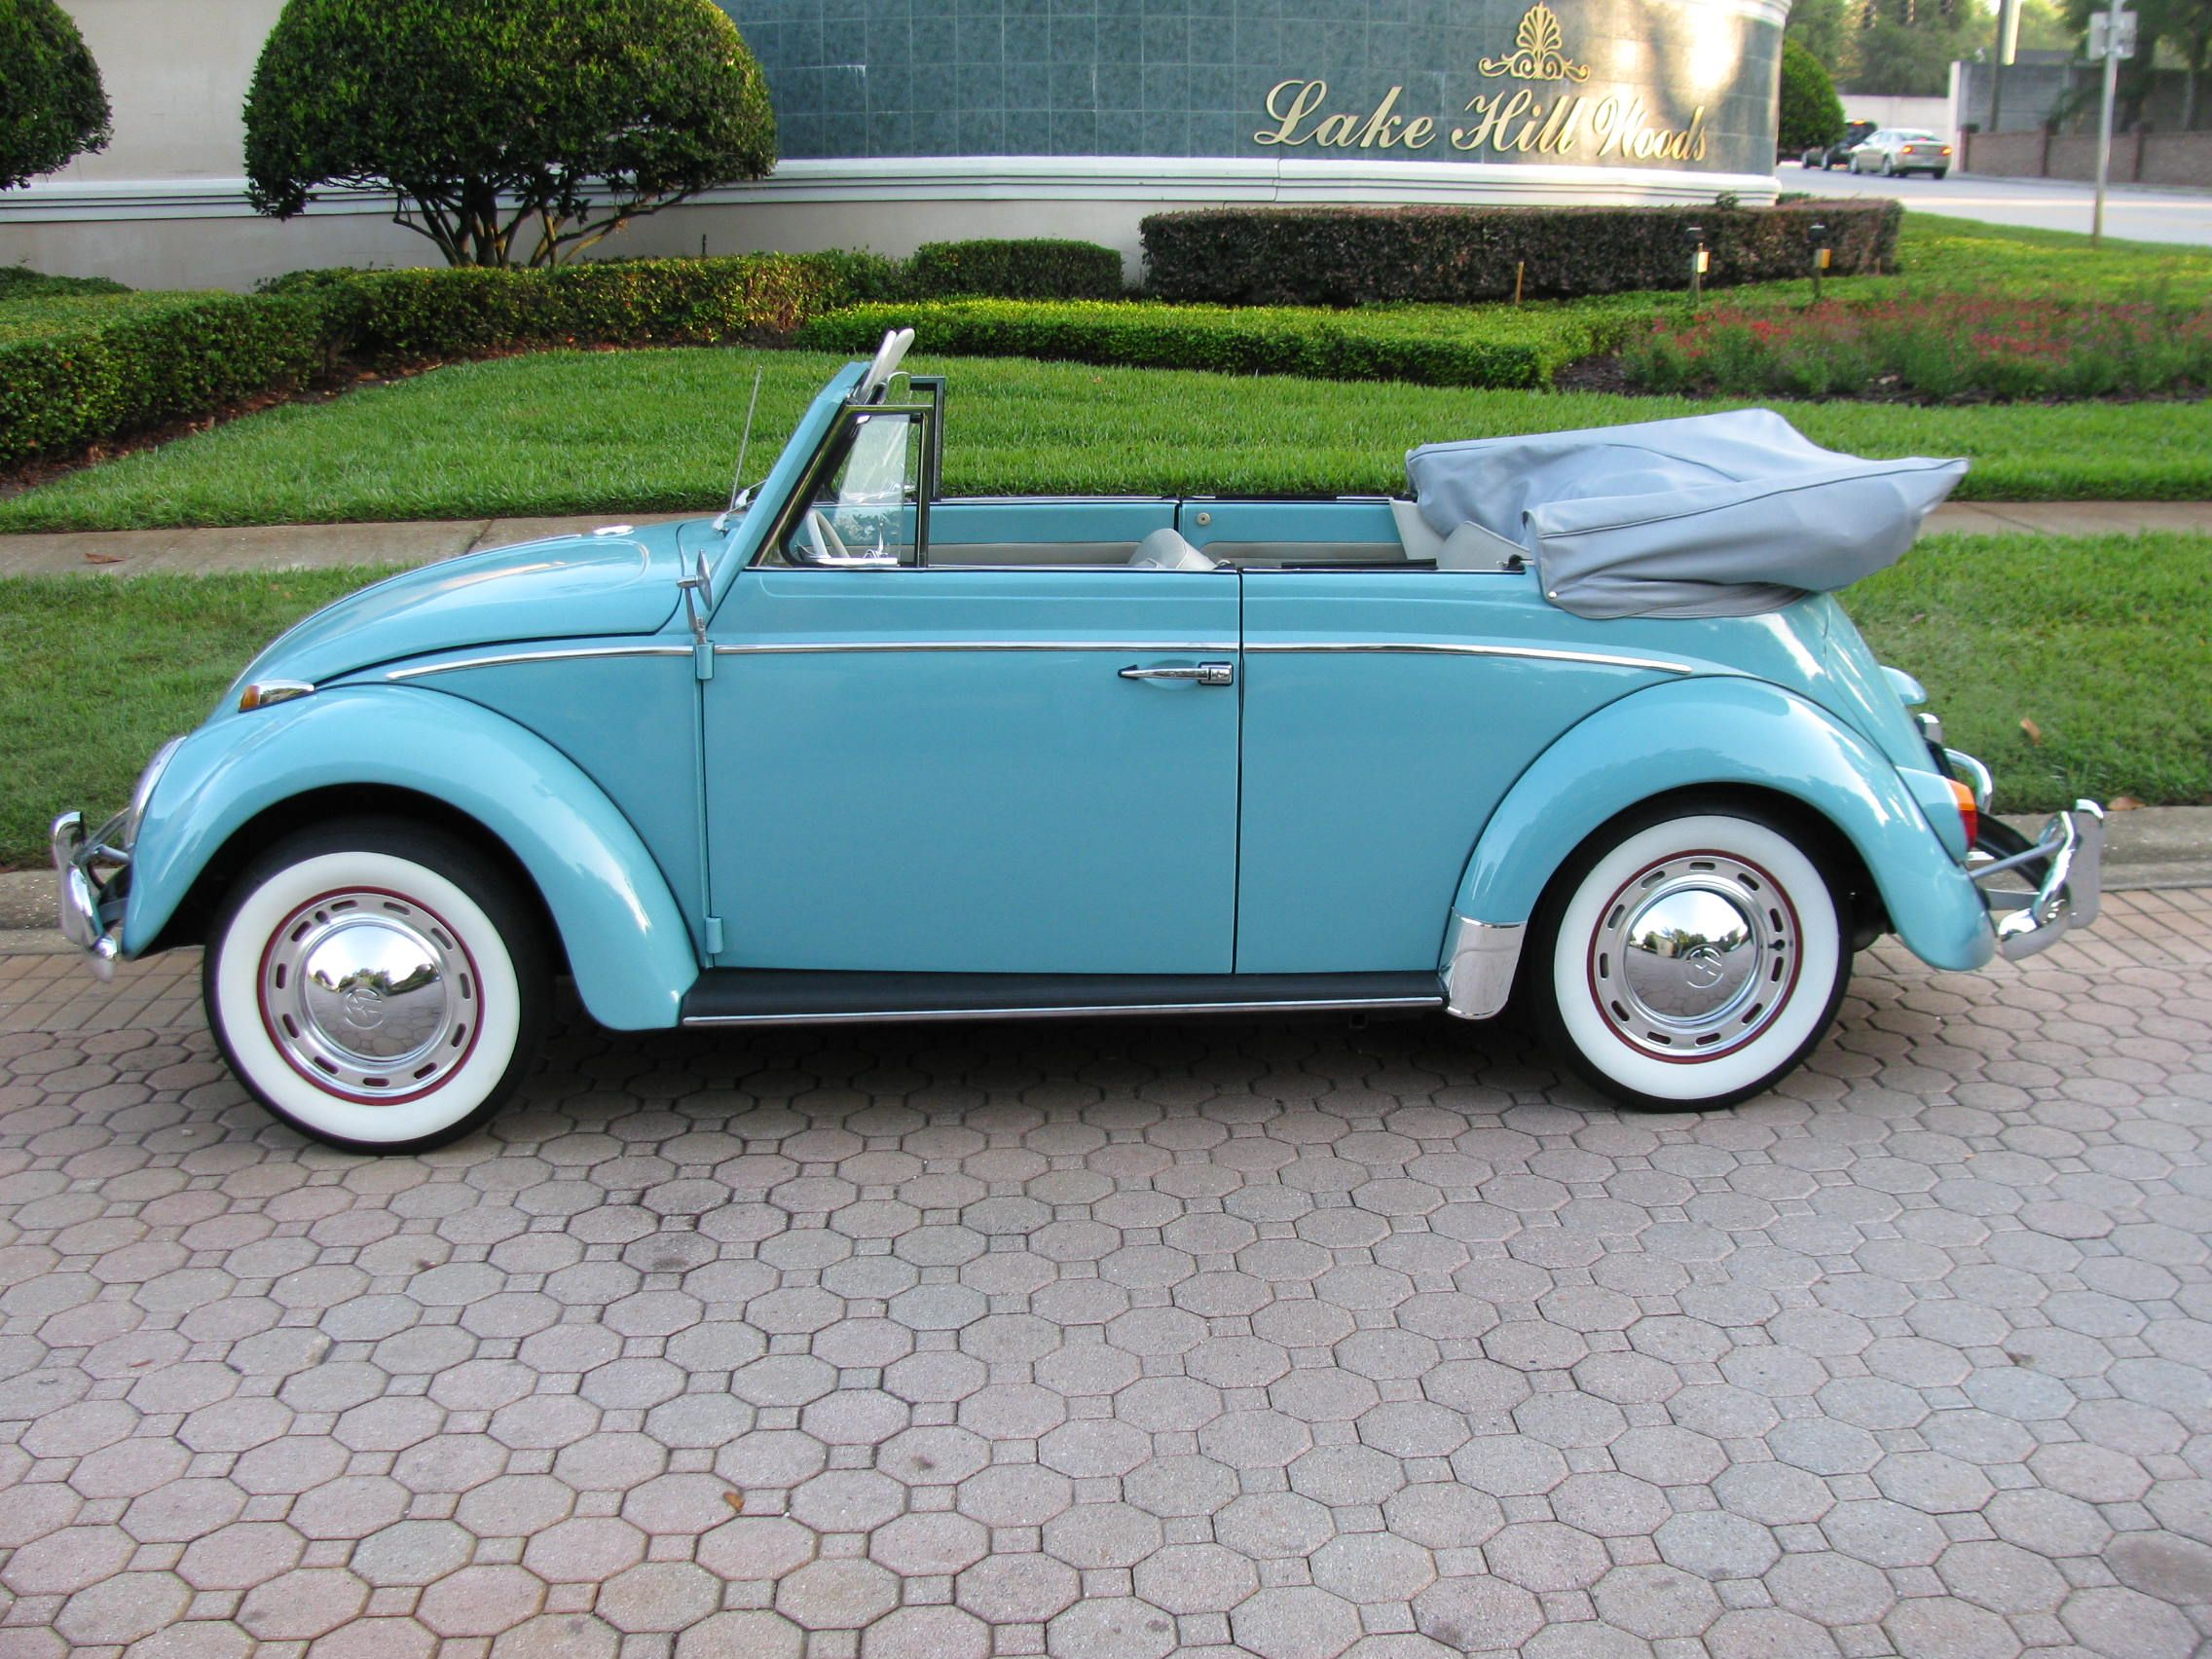 vw beetle convertible photo  joseph pinterest beetles vw  vw beetle convertible